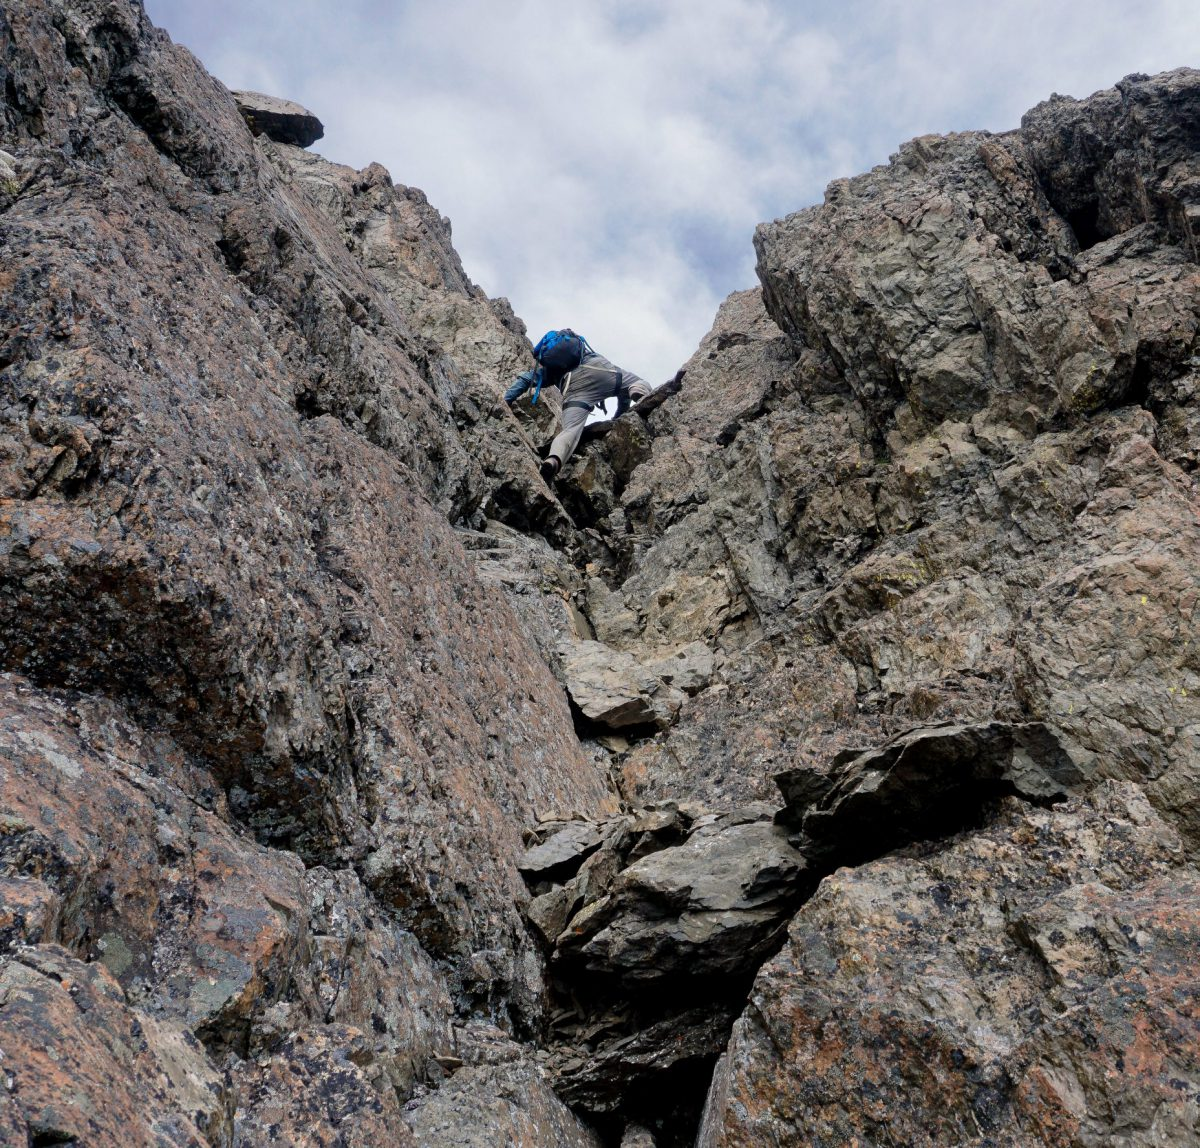 Exposed scrambling around 6500. Photo by Mike Meyers.